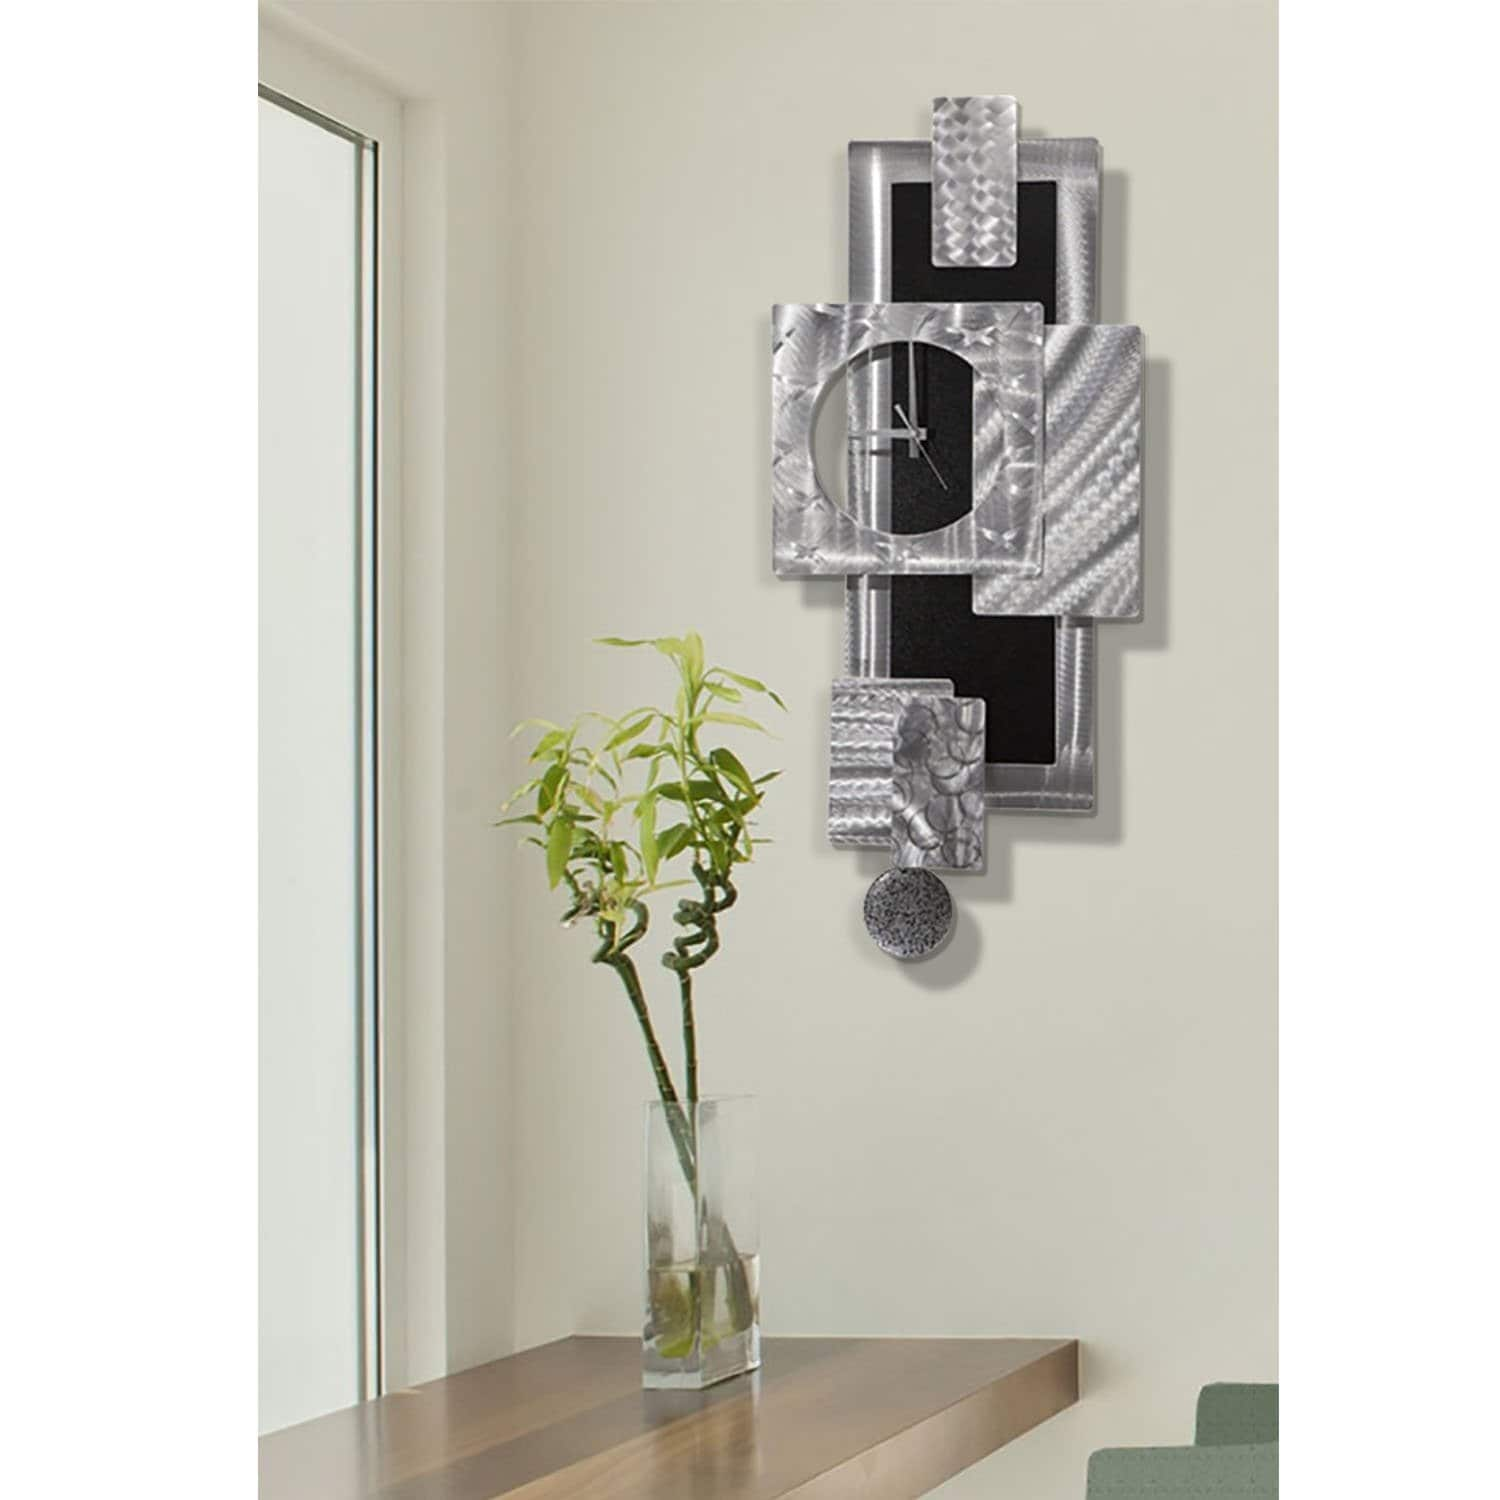 Statements2000 Large Metal Wall Art Clock Pendulum Modern Abstract Silver Black Sculpture Decor By Jon Allen Titan Clock Overstock 27085708